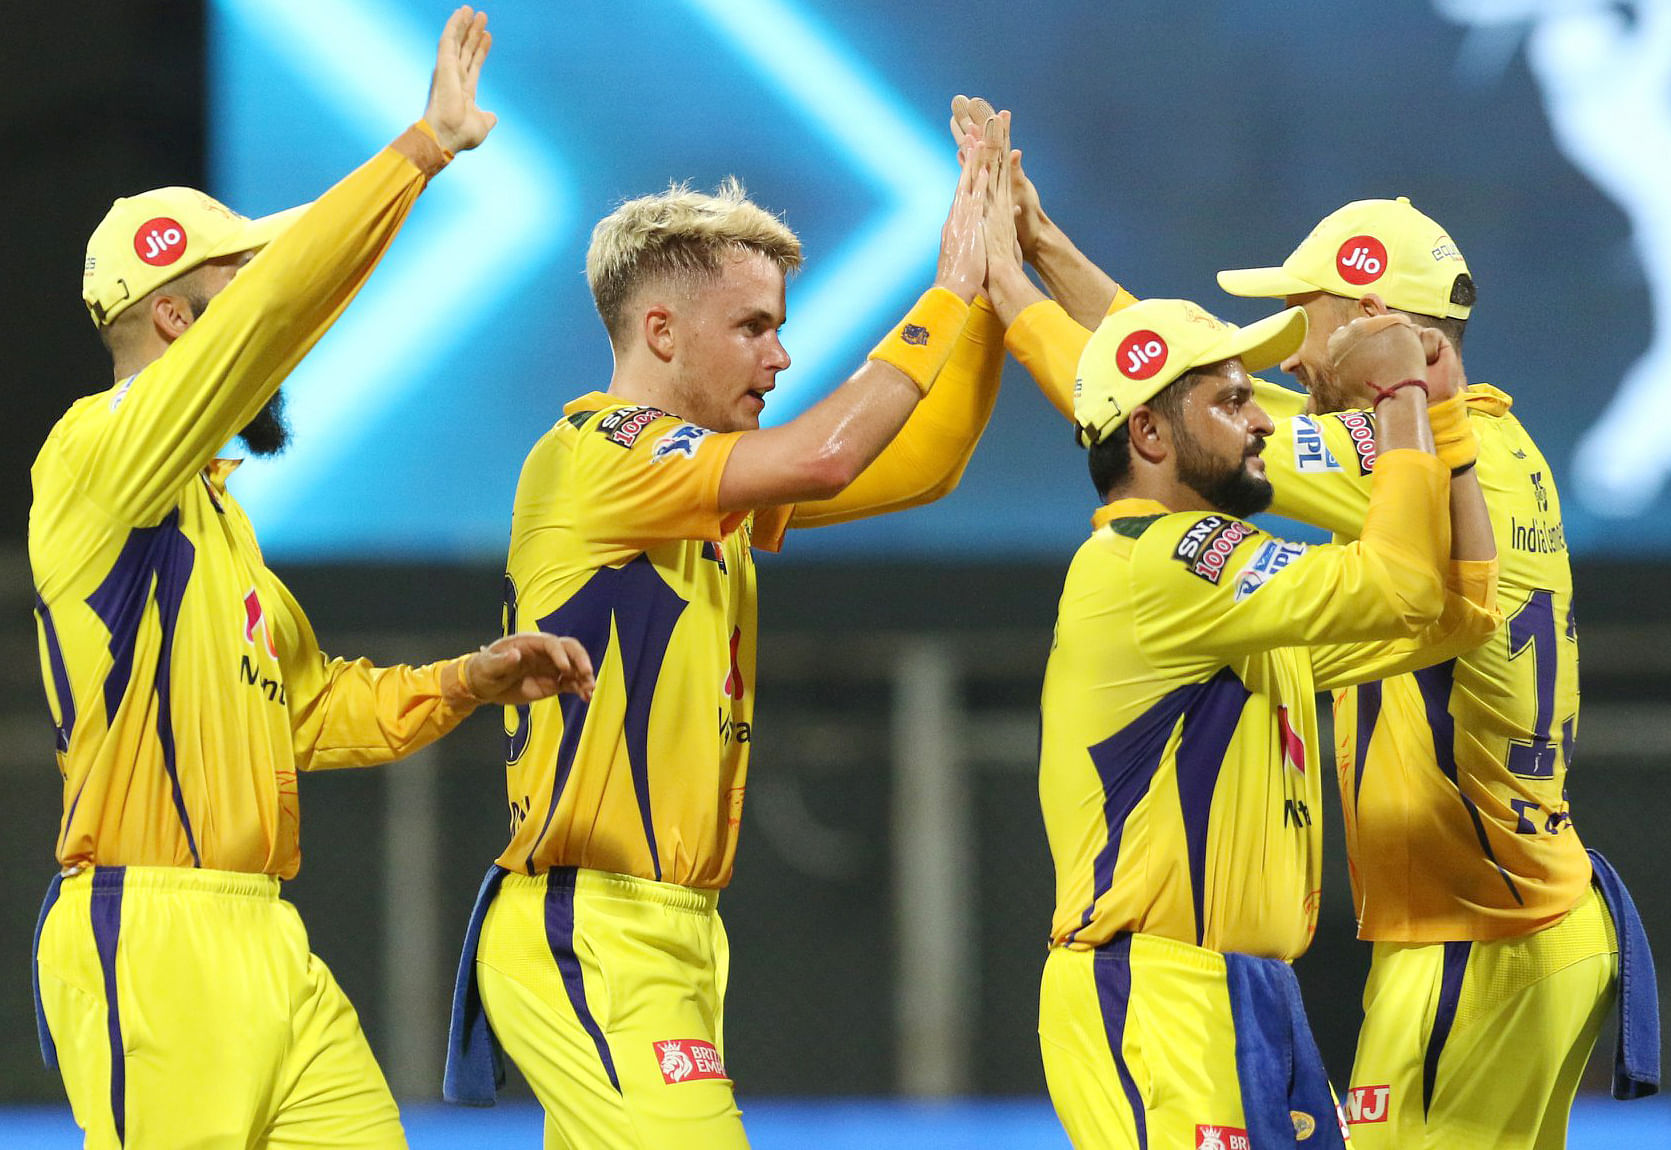 IPL 2021: Check out the points table after Chennai Super Kings vs Rajasthan Royals clash